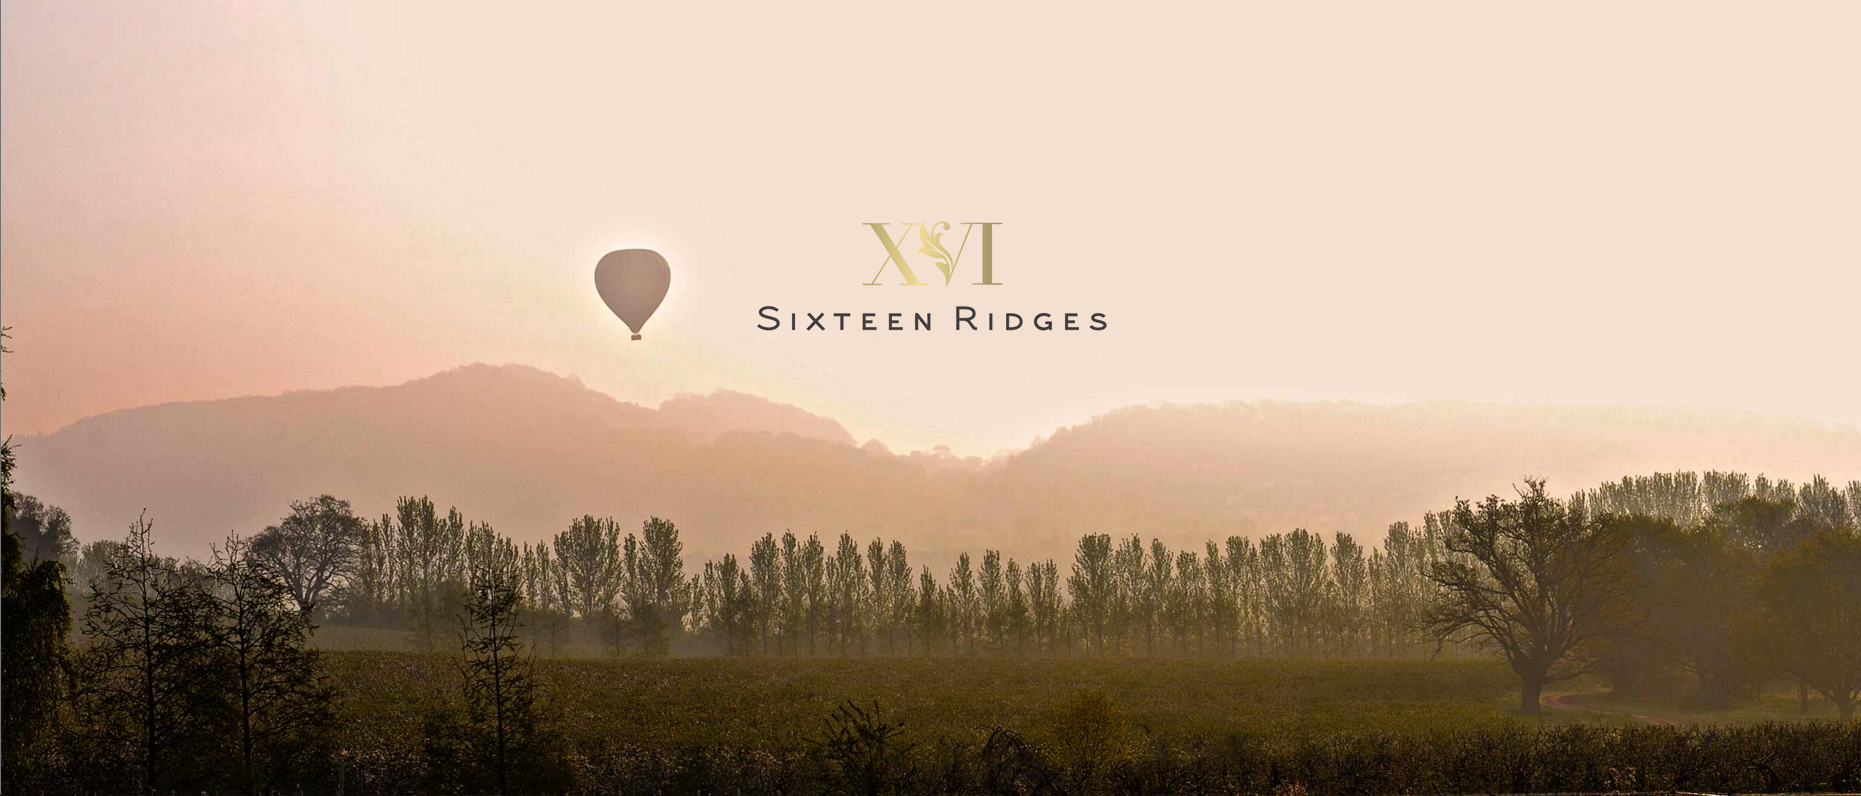 Sixteen Ridges wines